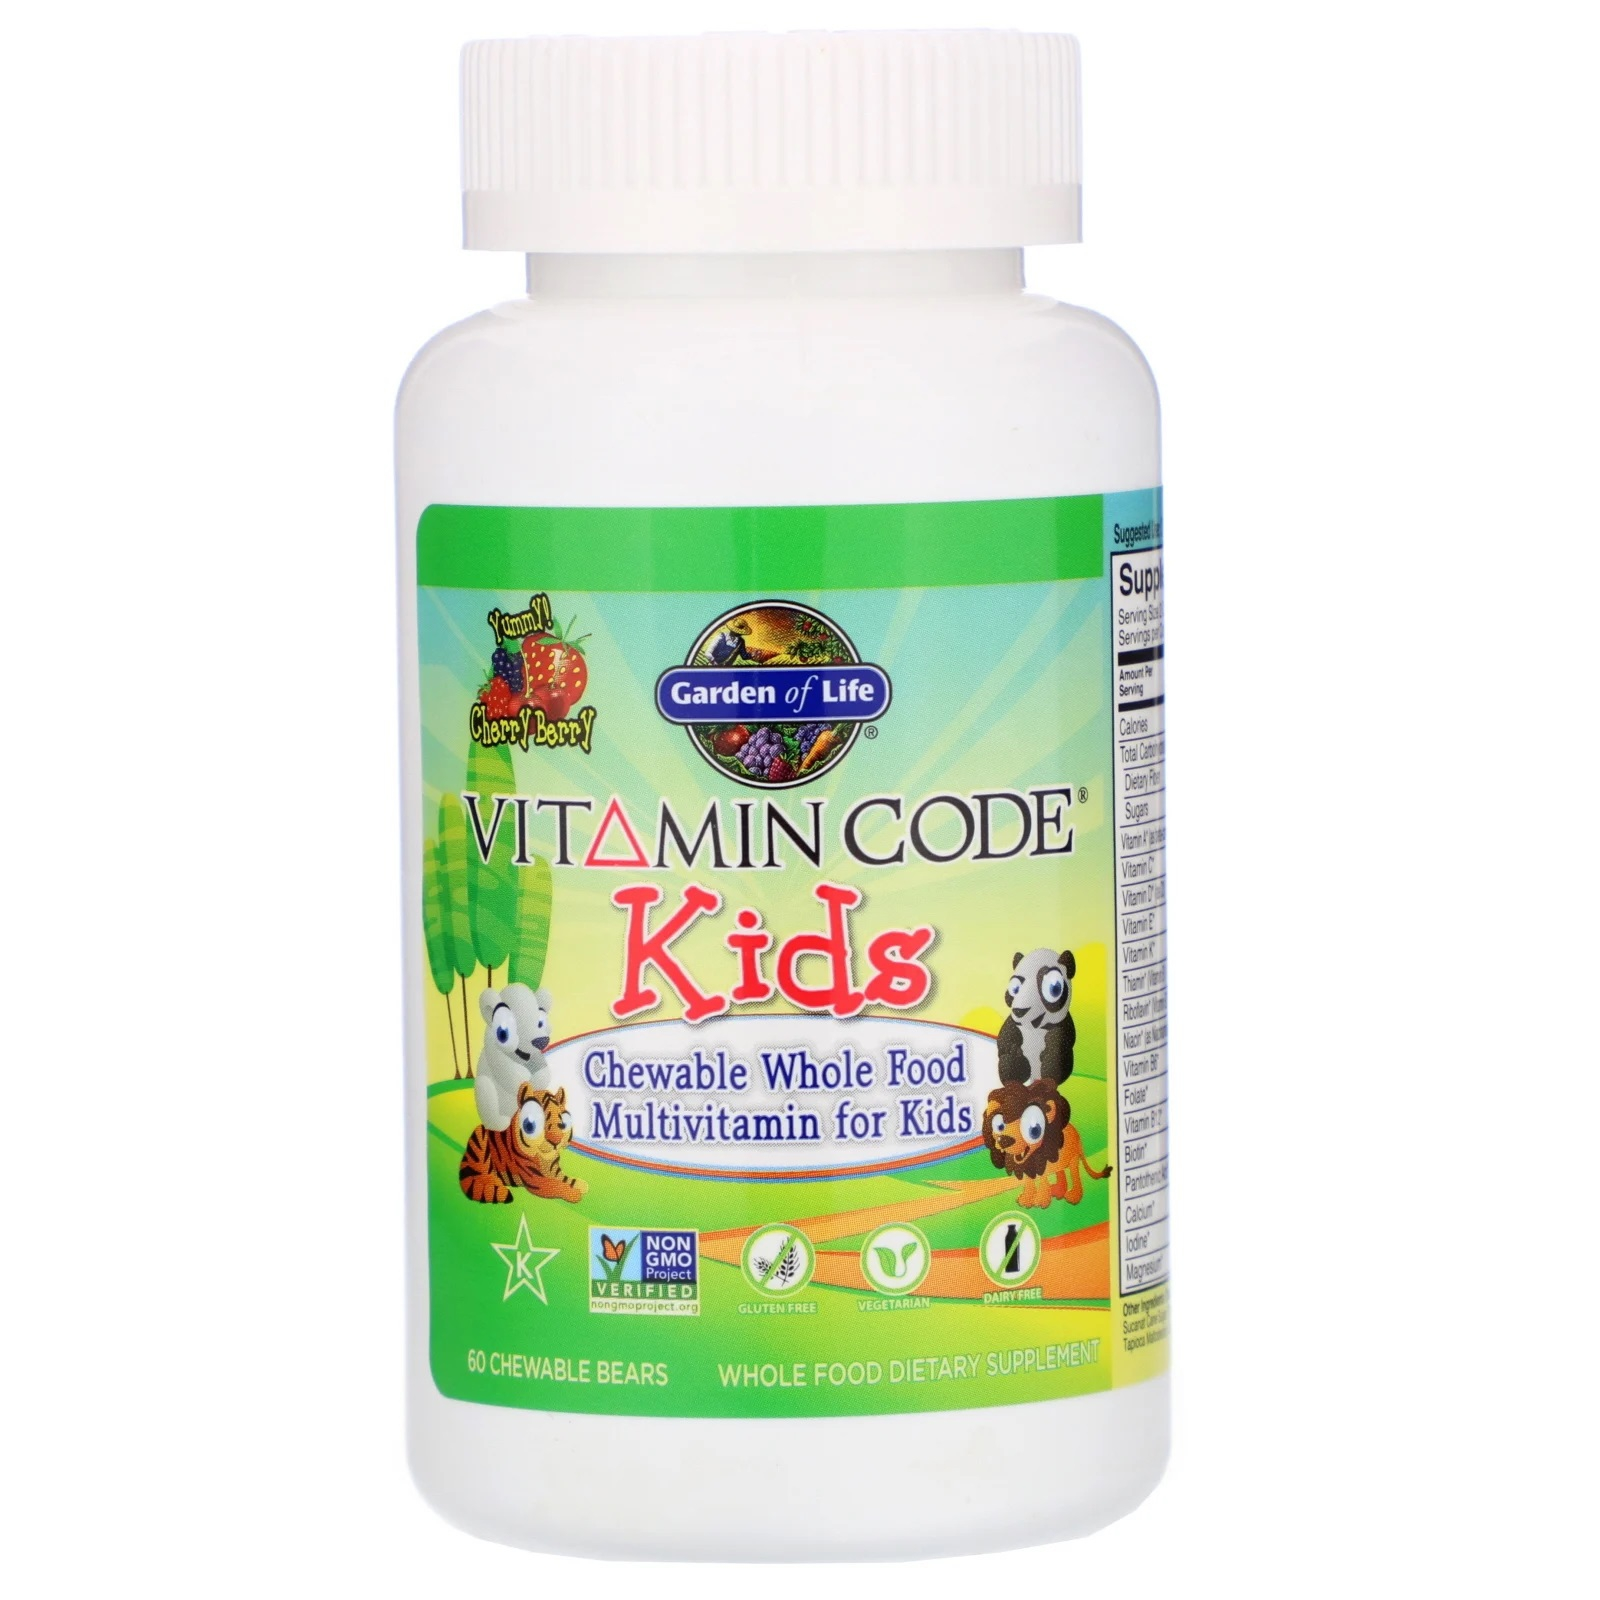 Image of Vitamin Code - Chewable Whole Food Multivitamin for Kids - Cherry Berry (60 chewable tablets) - Garden of Life 0658010114400